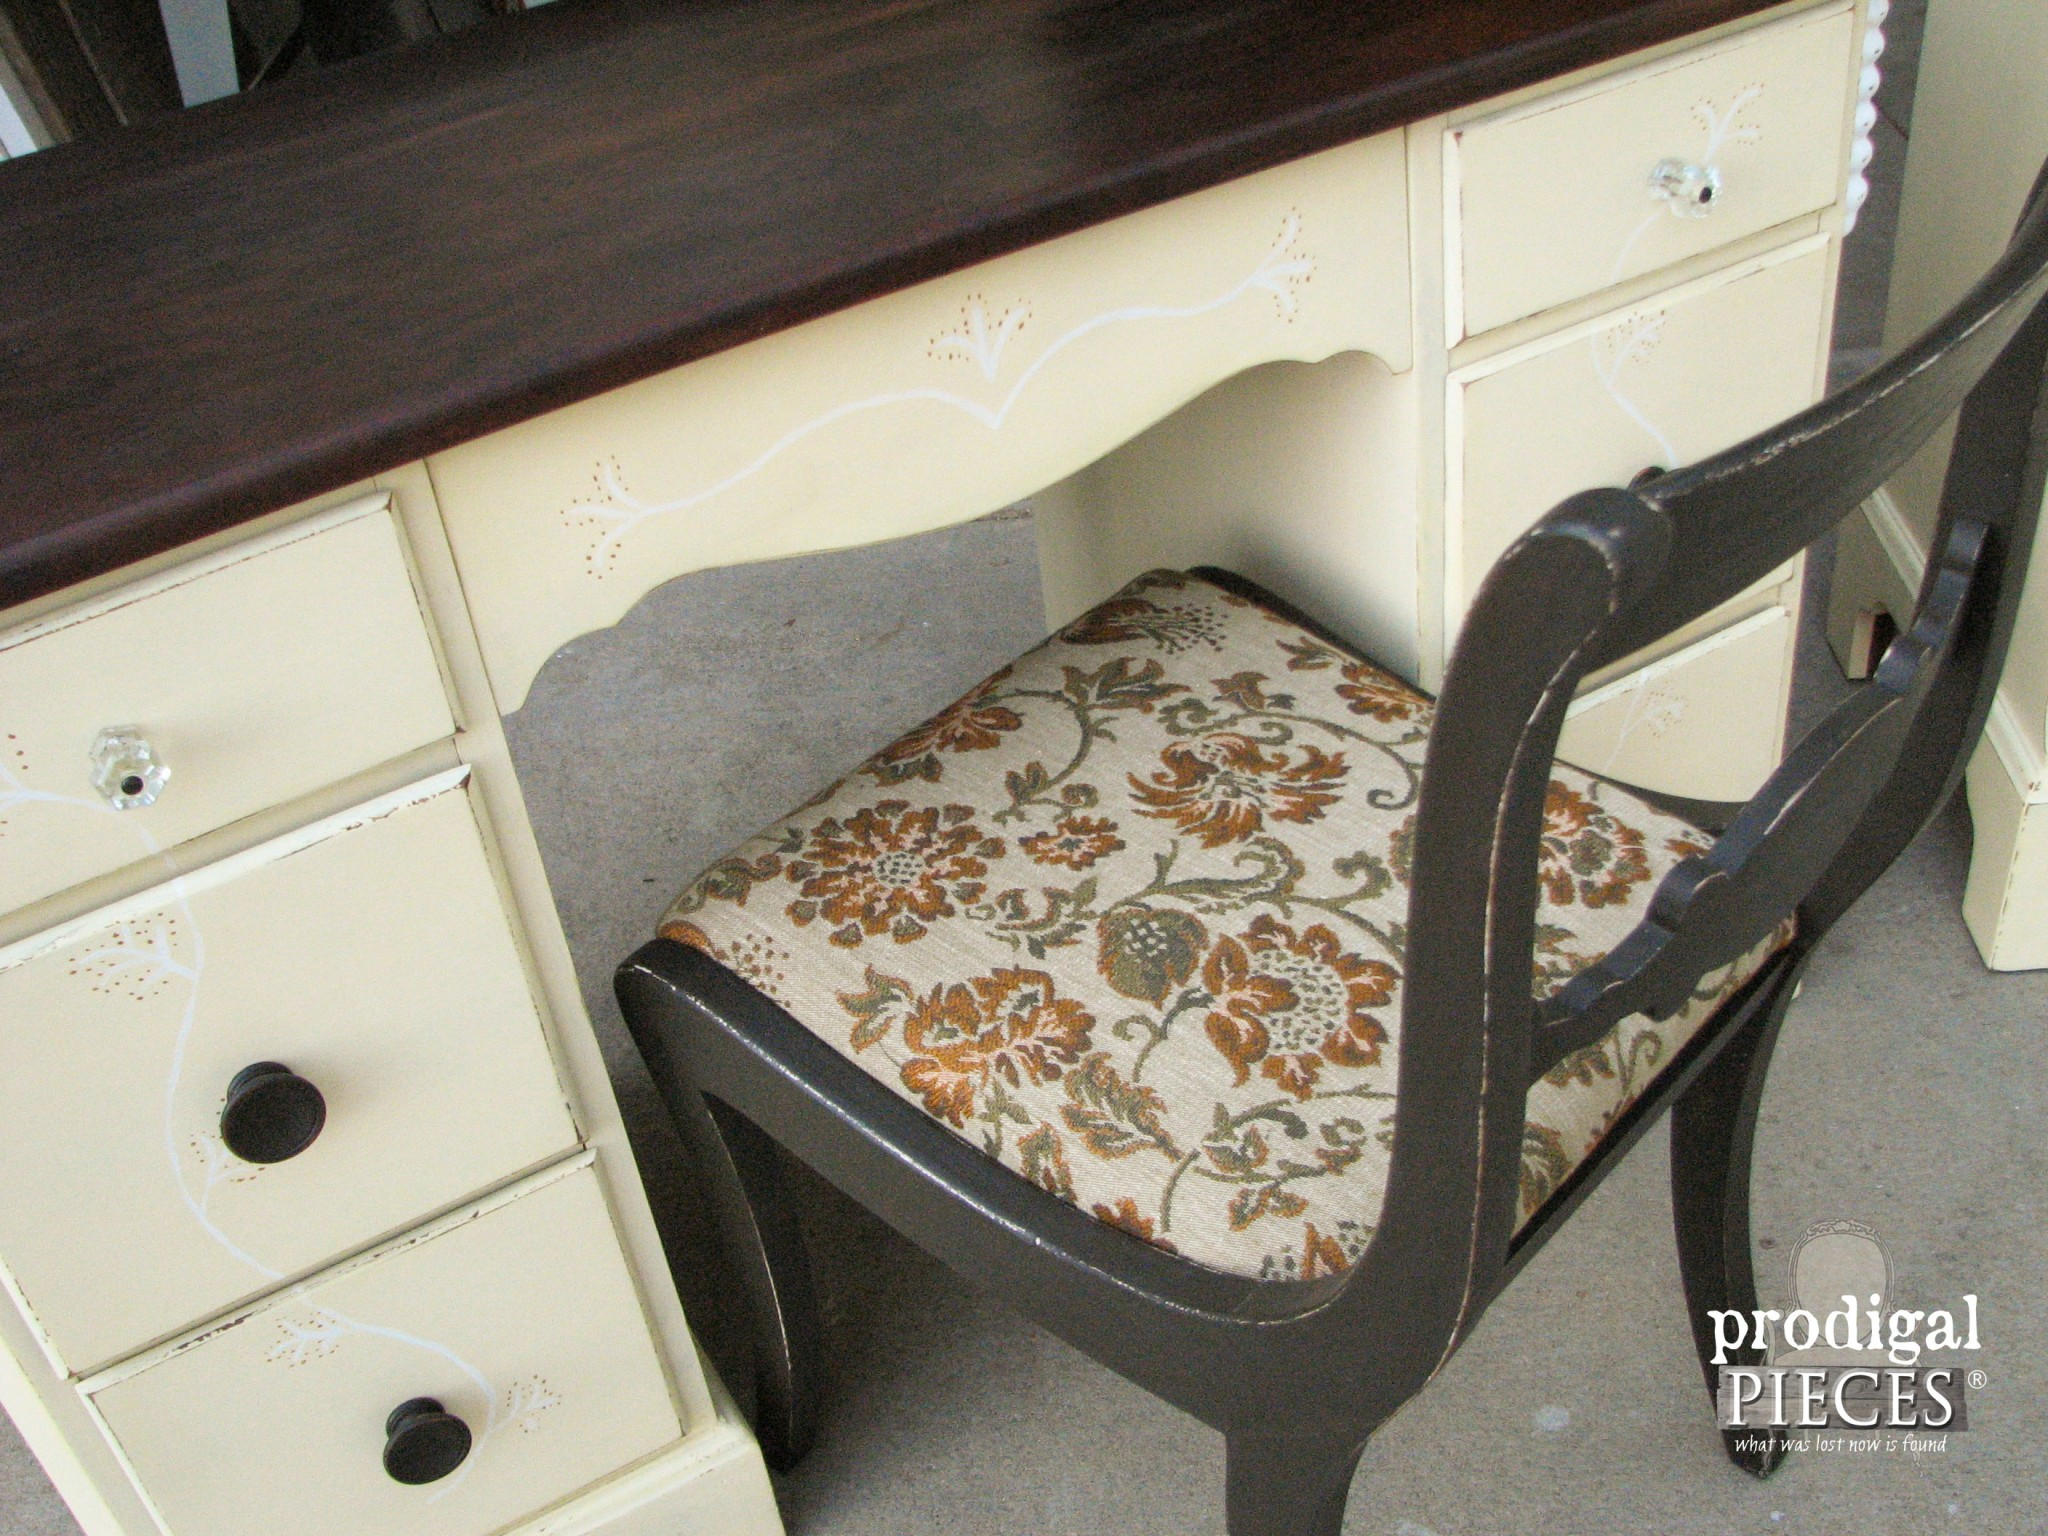 Upholstered Vintage Vanity Chair by Prodigal Pieces | www.prodigalpieces.com